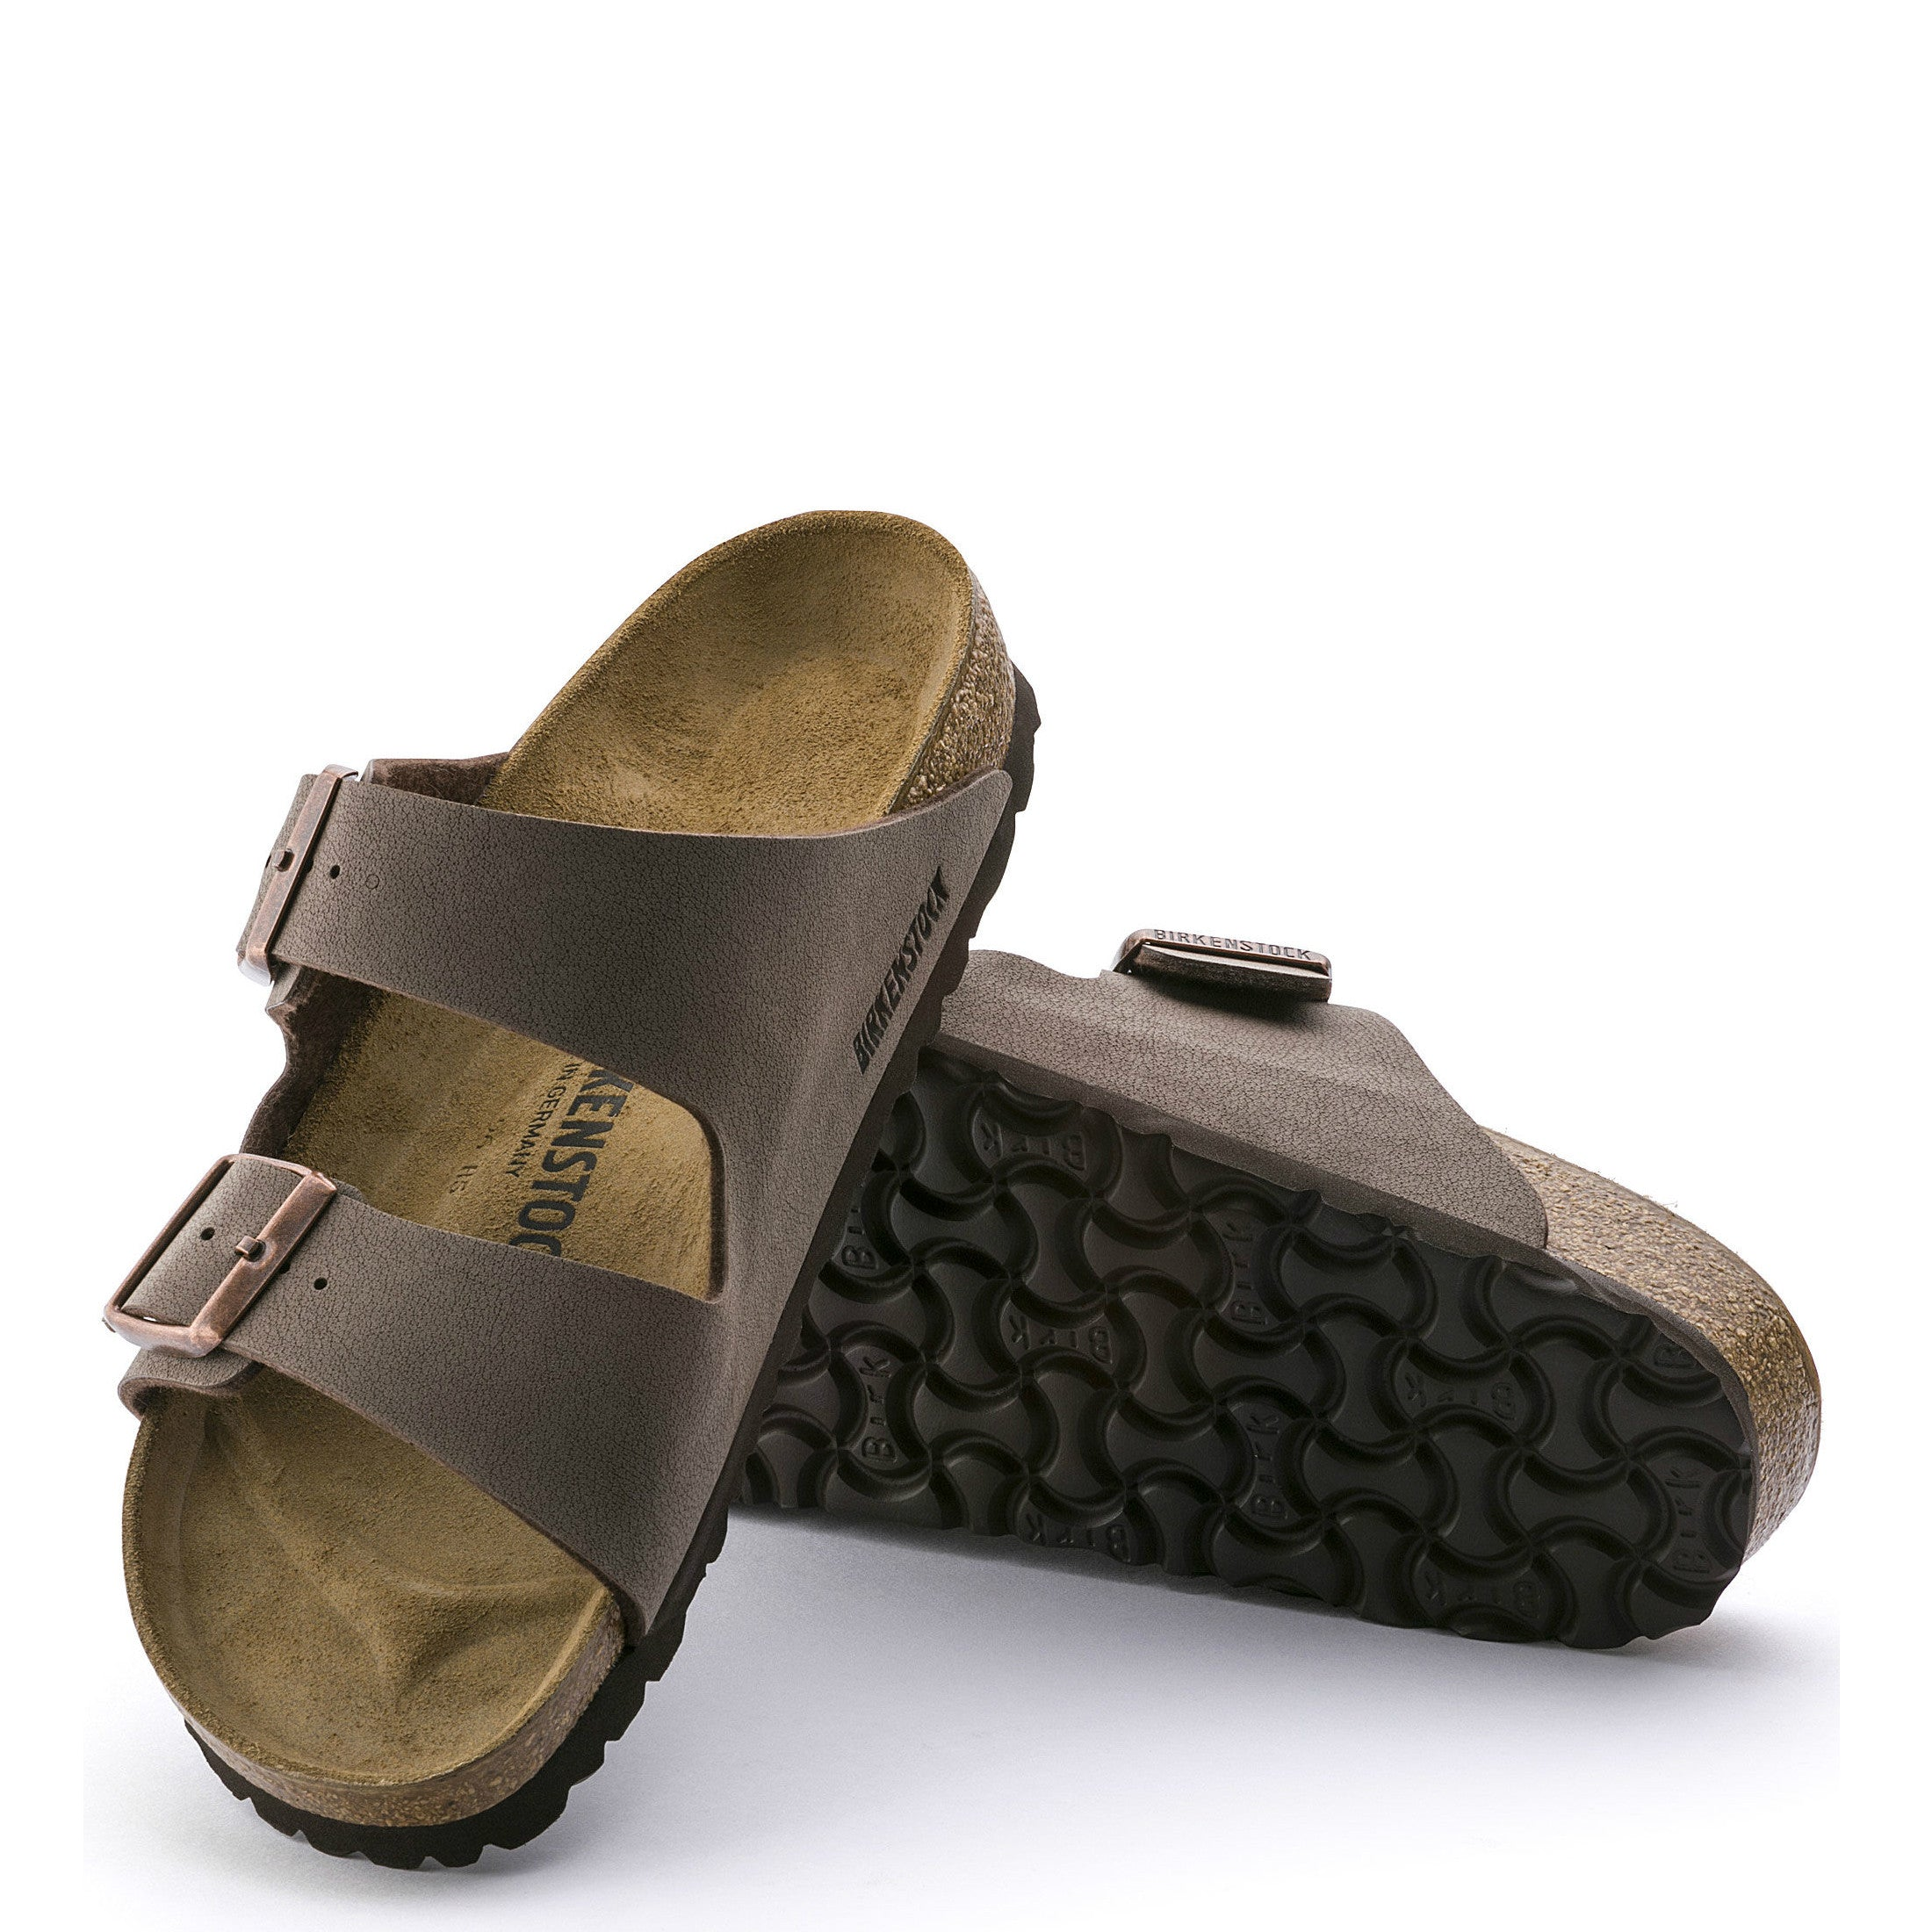 d8cbfe139 Birkenstock Arizona Sandal (Narrow) - Mocca 151183 - ShoeShackOnline